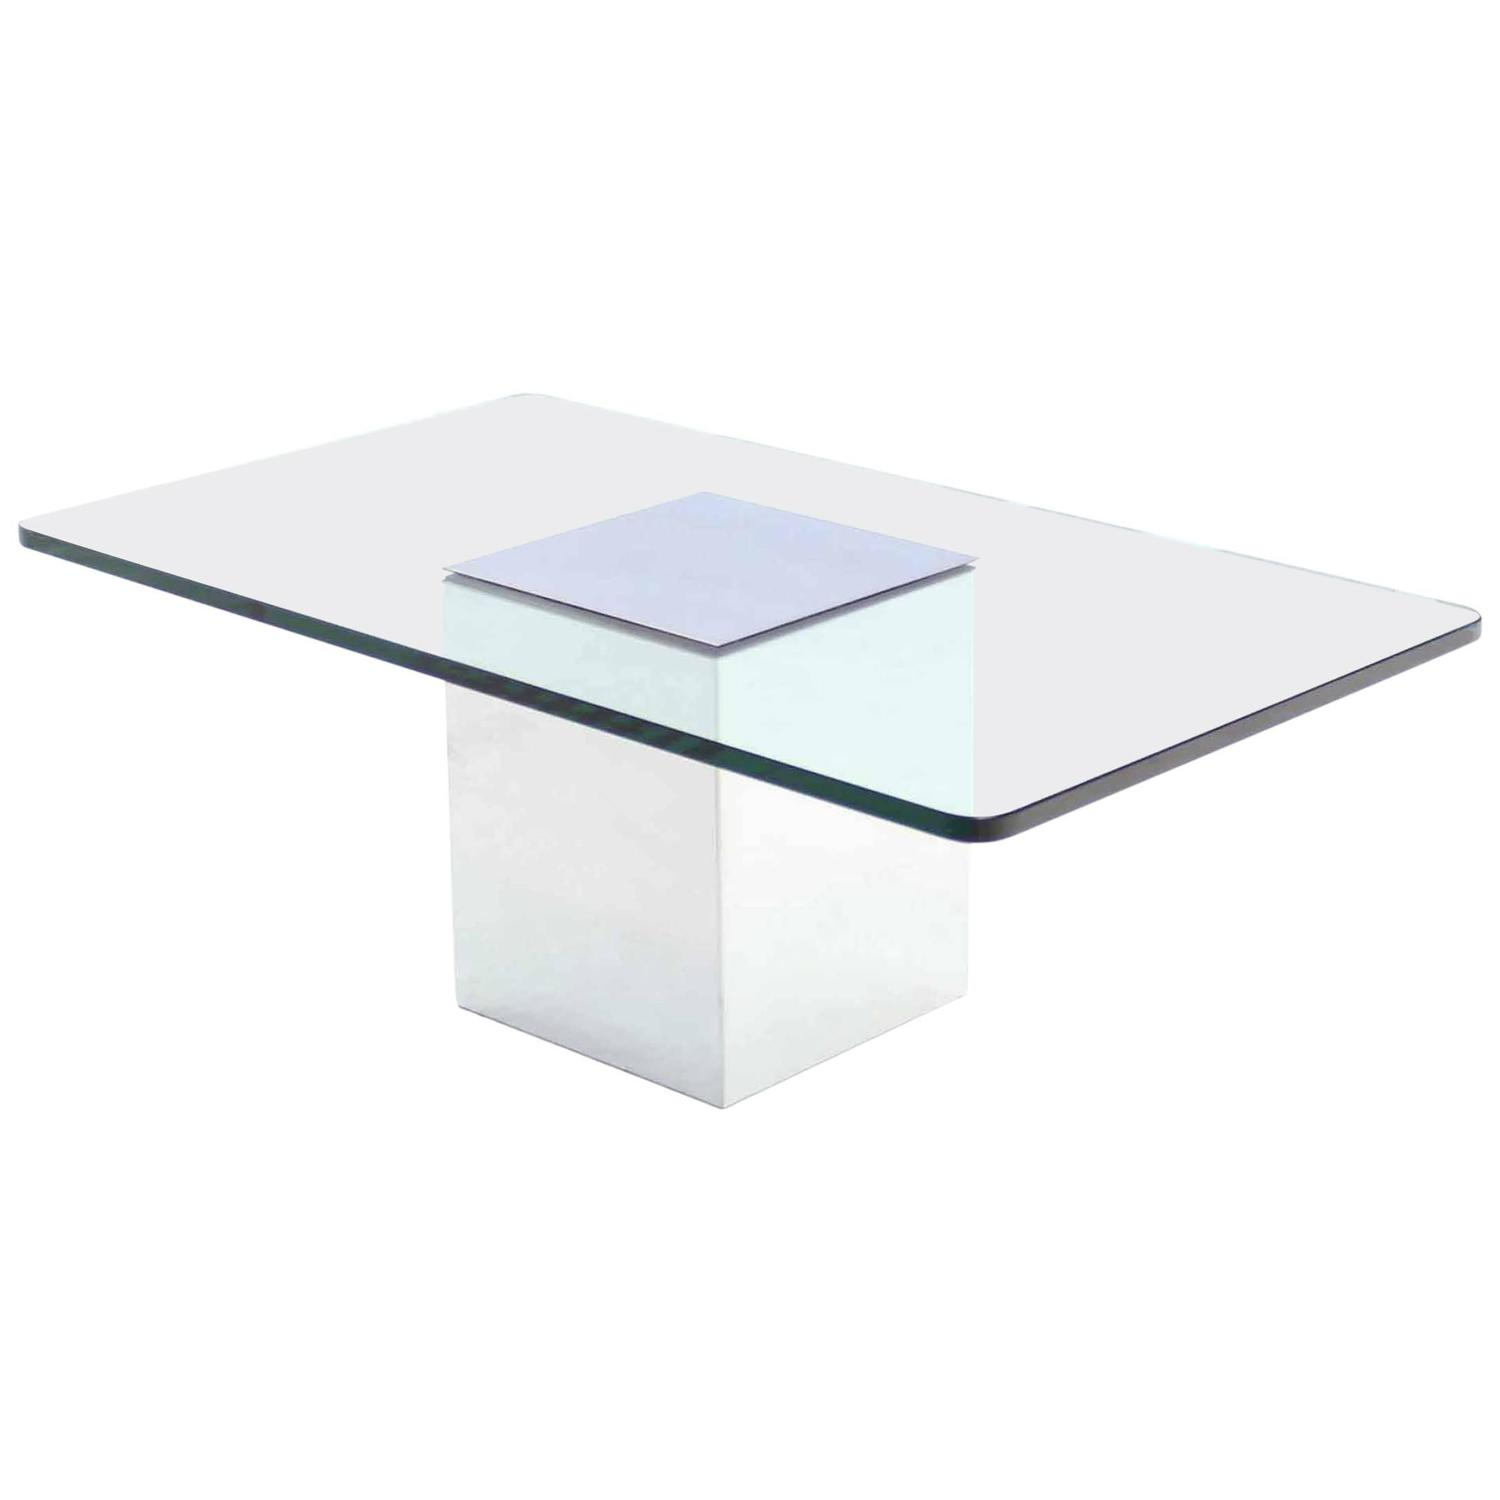 Polished Steel Base Glass Top Coffee Table For Sale At 1stdibs